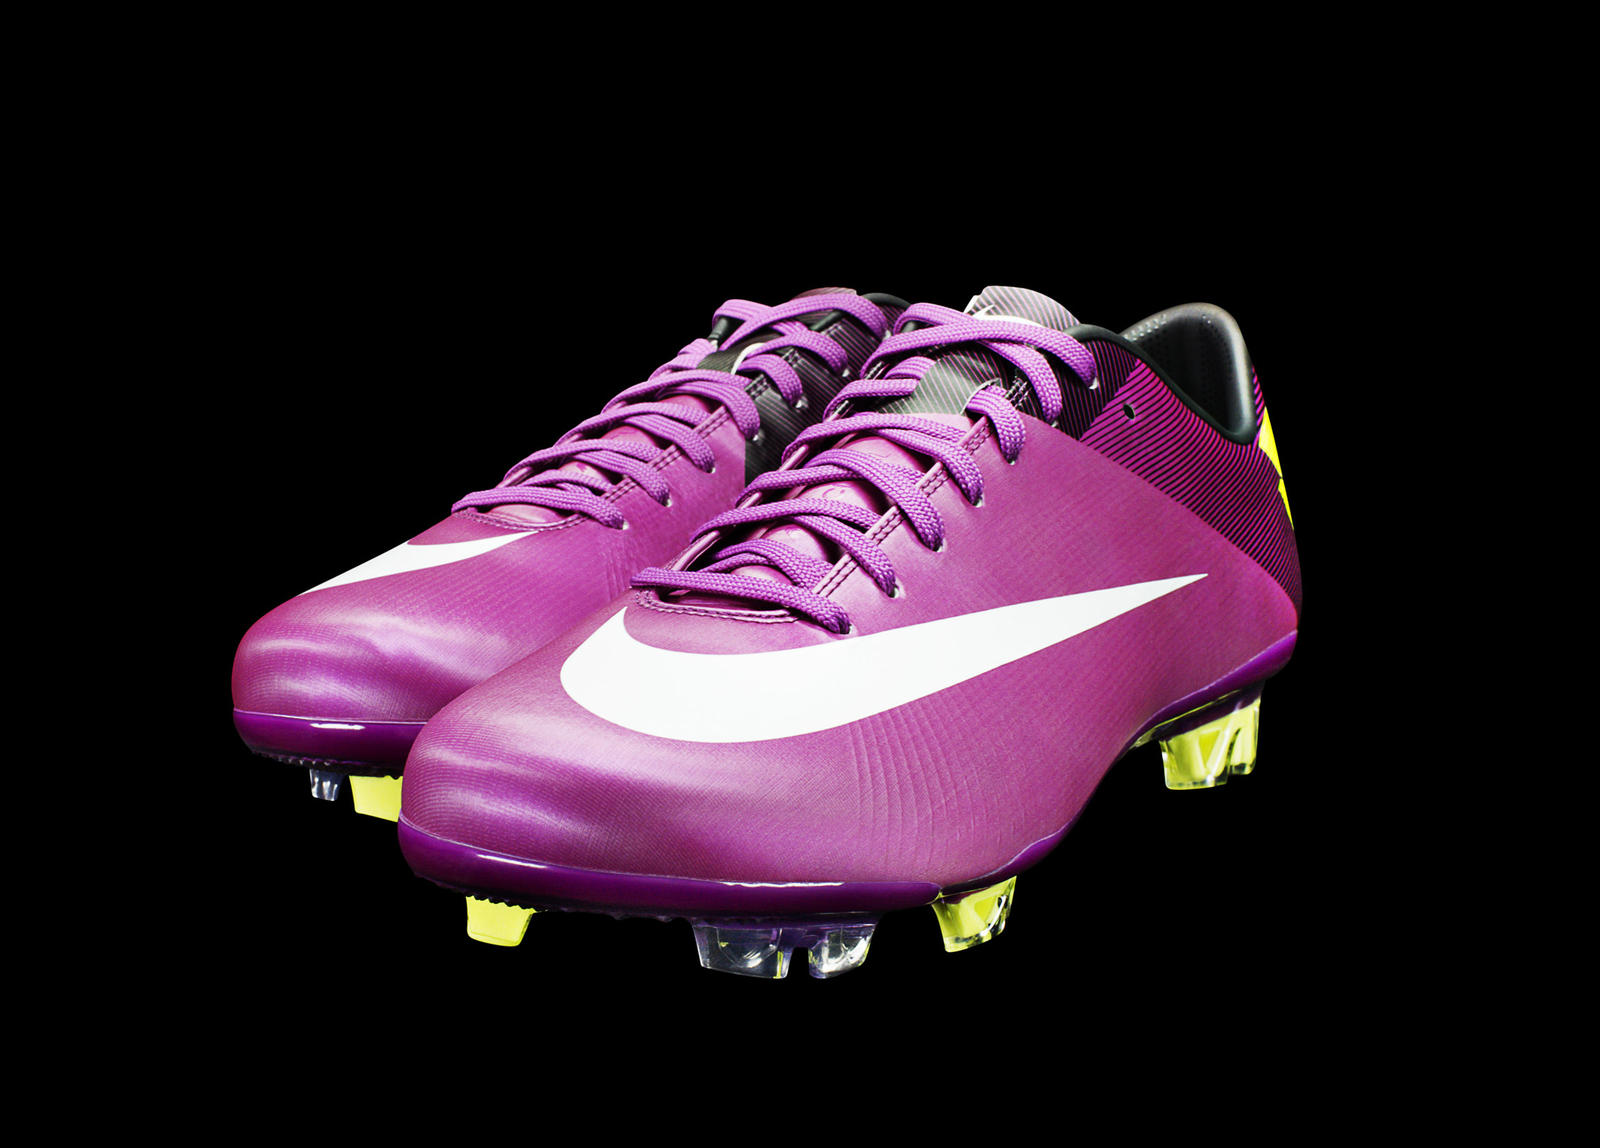 Nike Introduces The Mercurial Vapor SuperFly III - Nike News